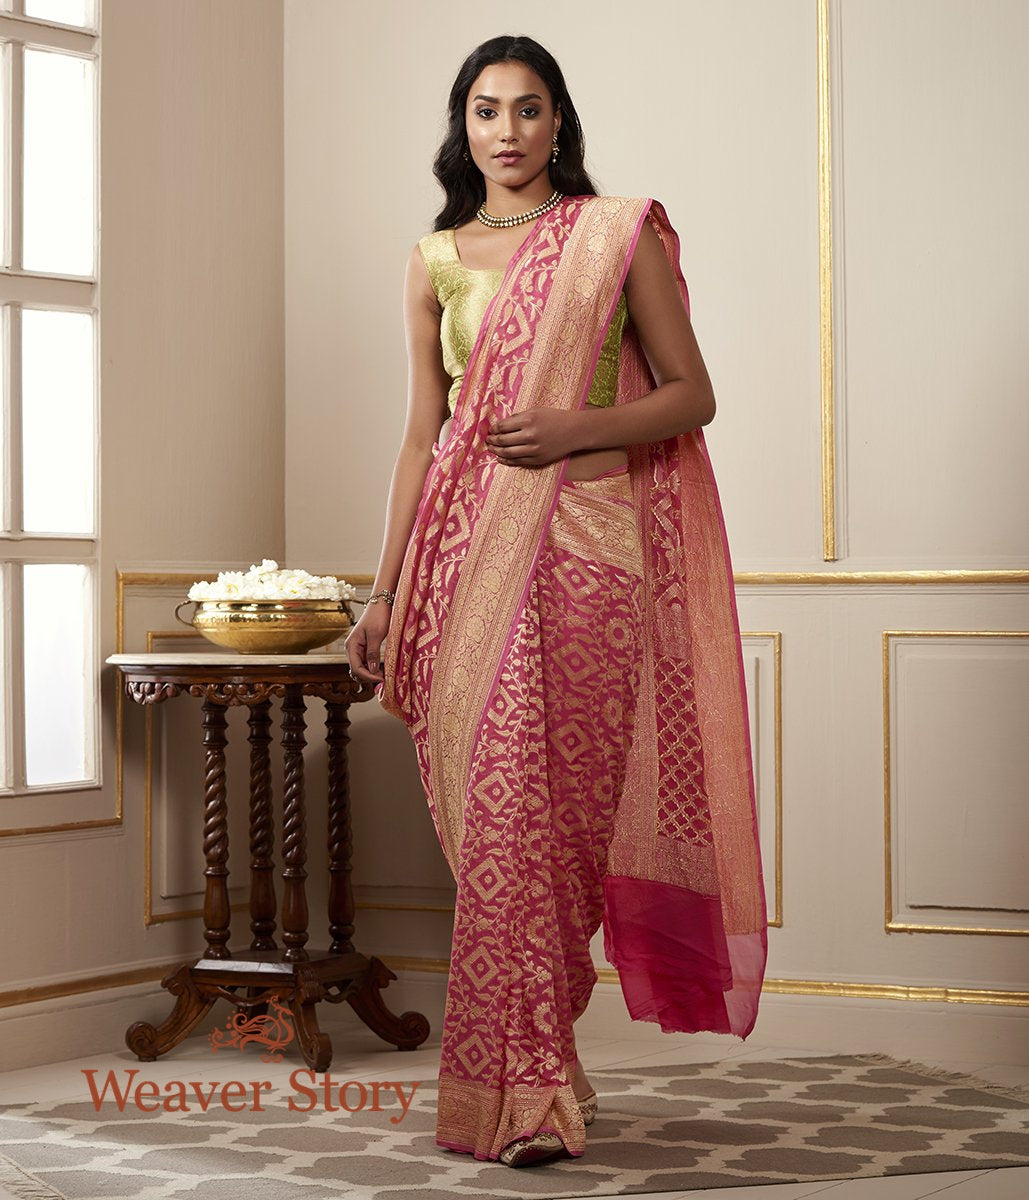 Handwoven Pink Banarasi Cutwork Jangla Saree in Pure Georgette